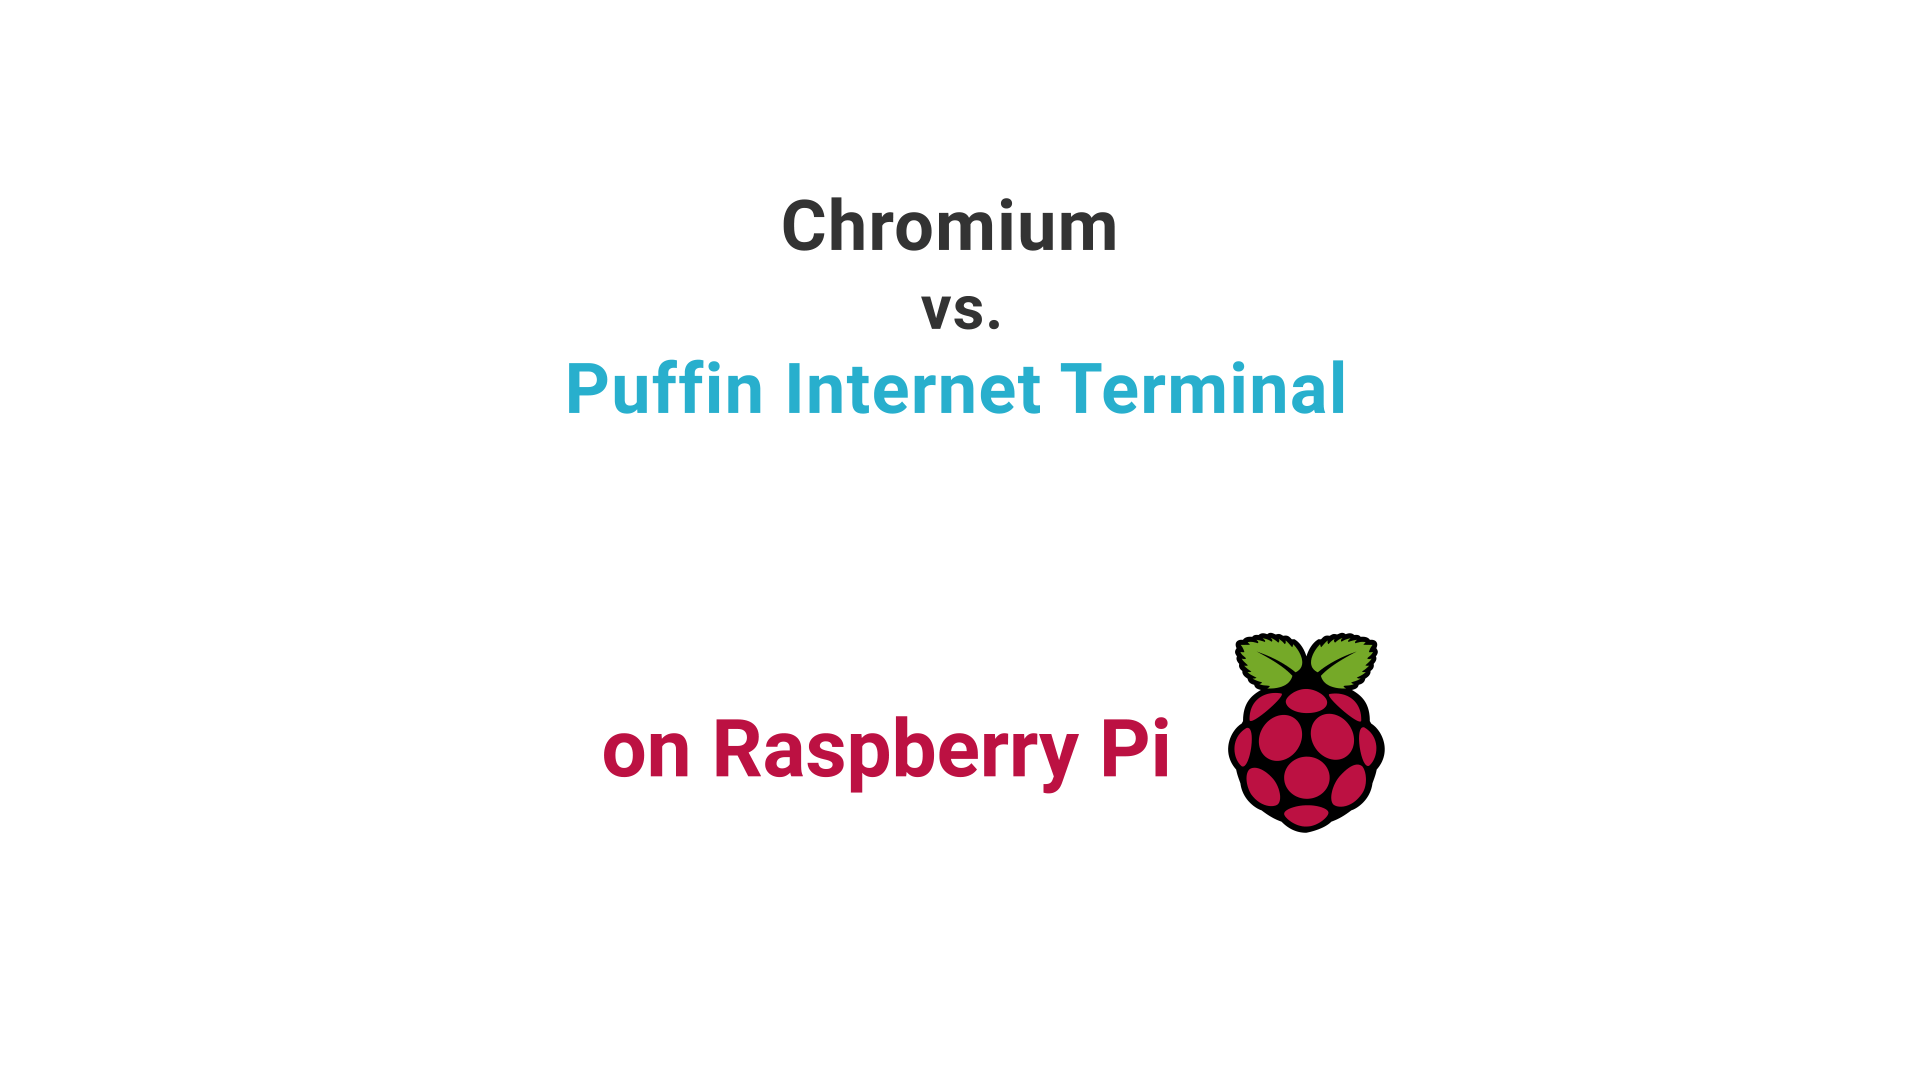 Puffin Internet Terminal - Turning a tiny Raspberry Pi into